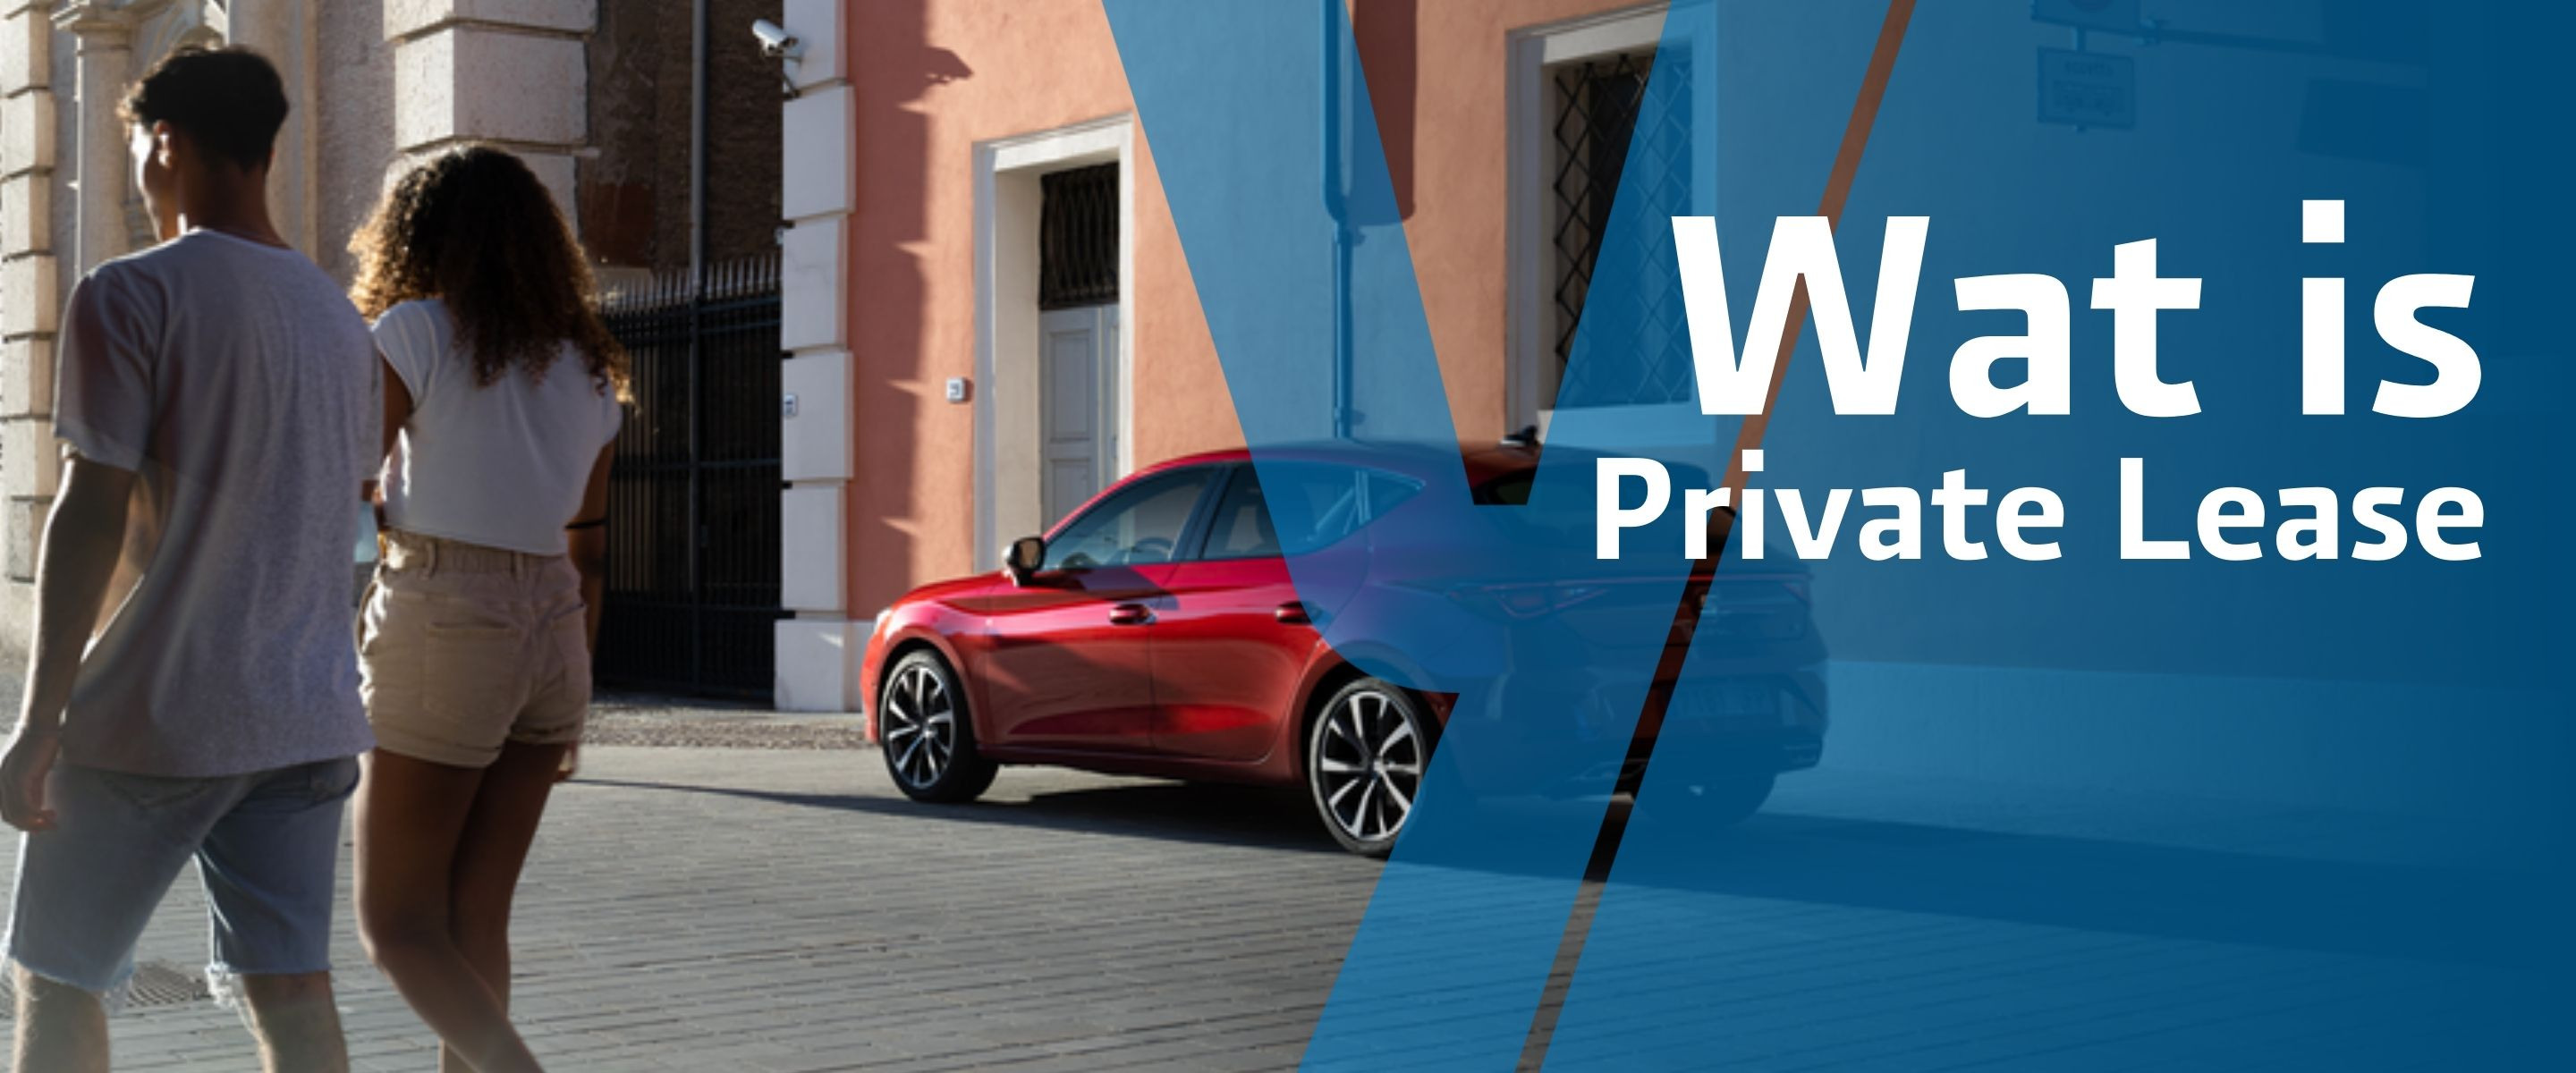 Wat is private lease